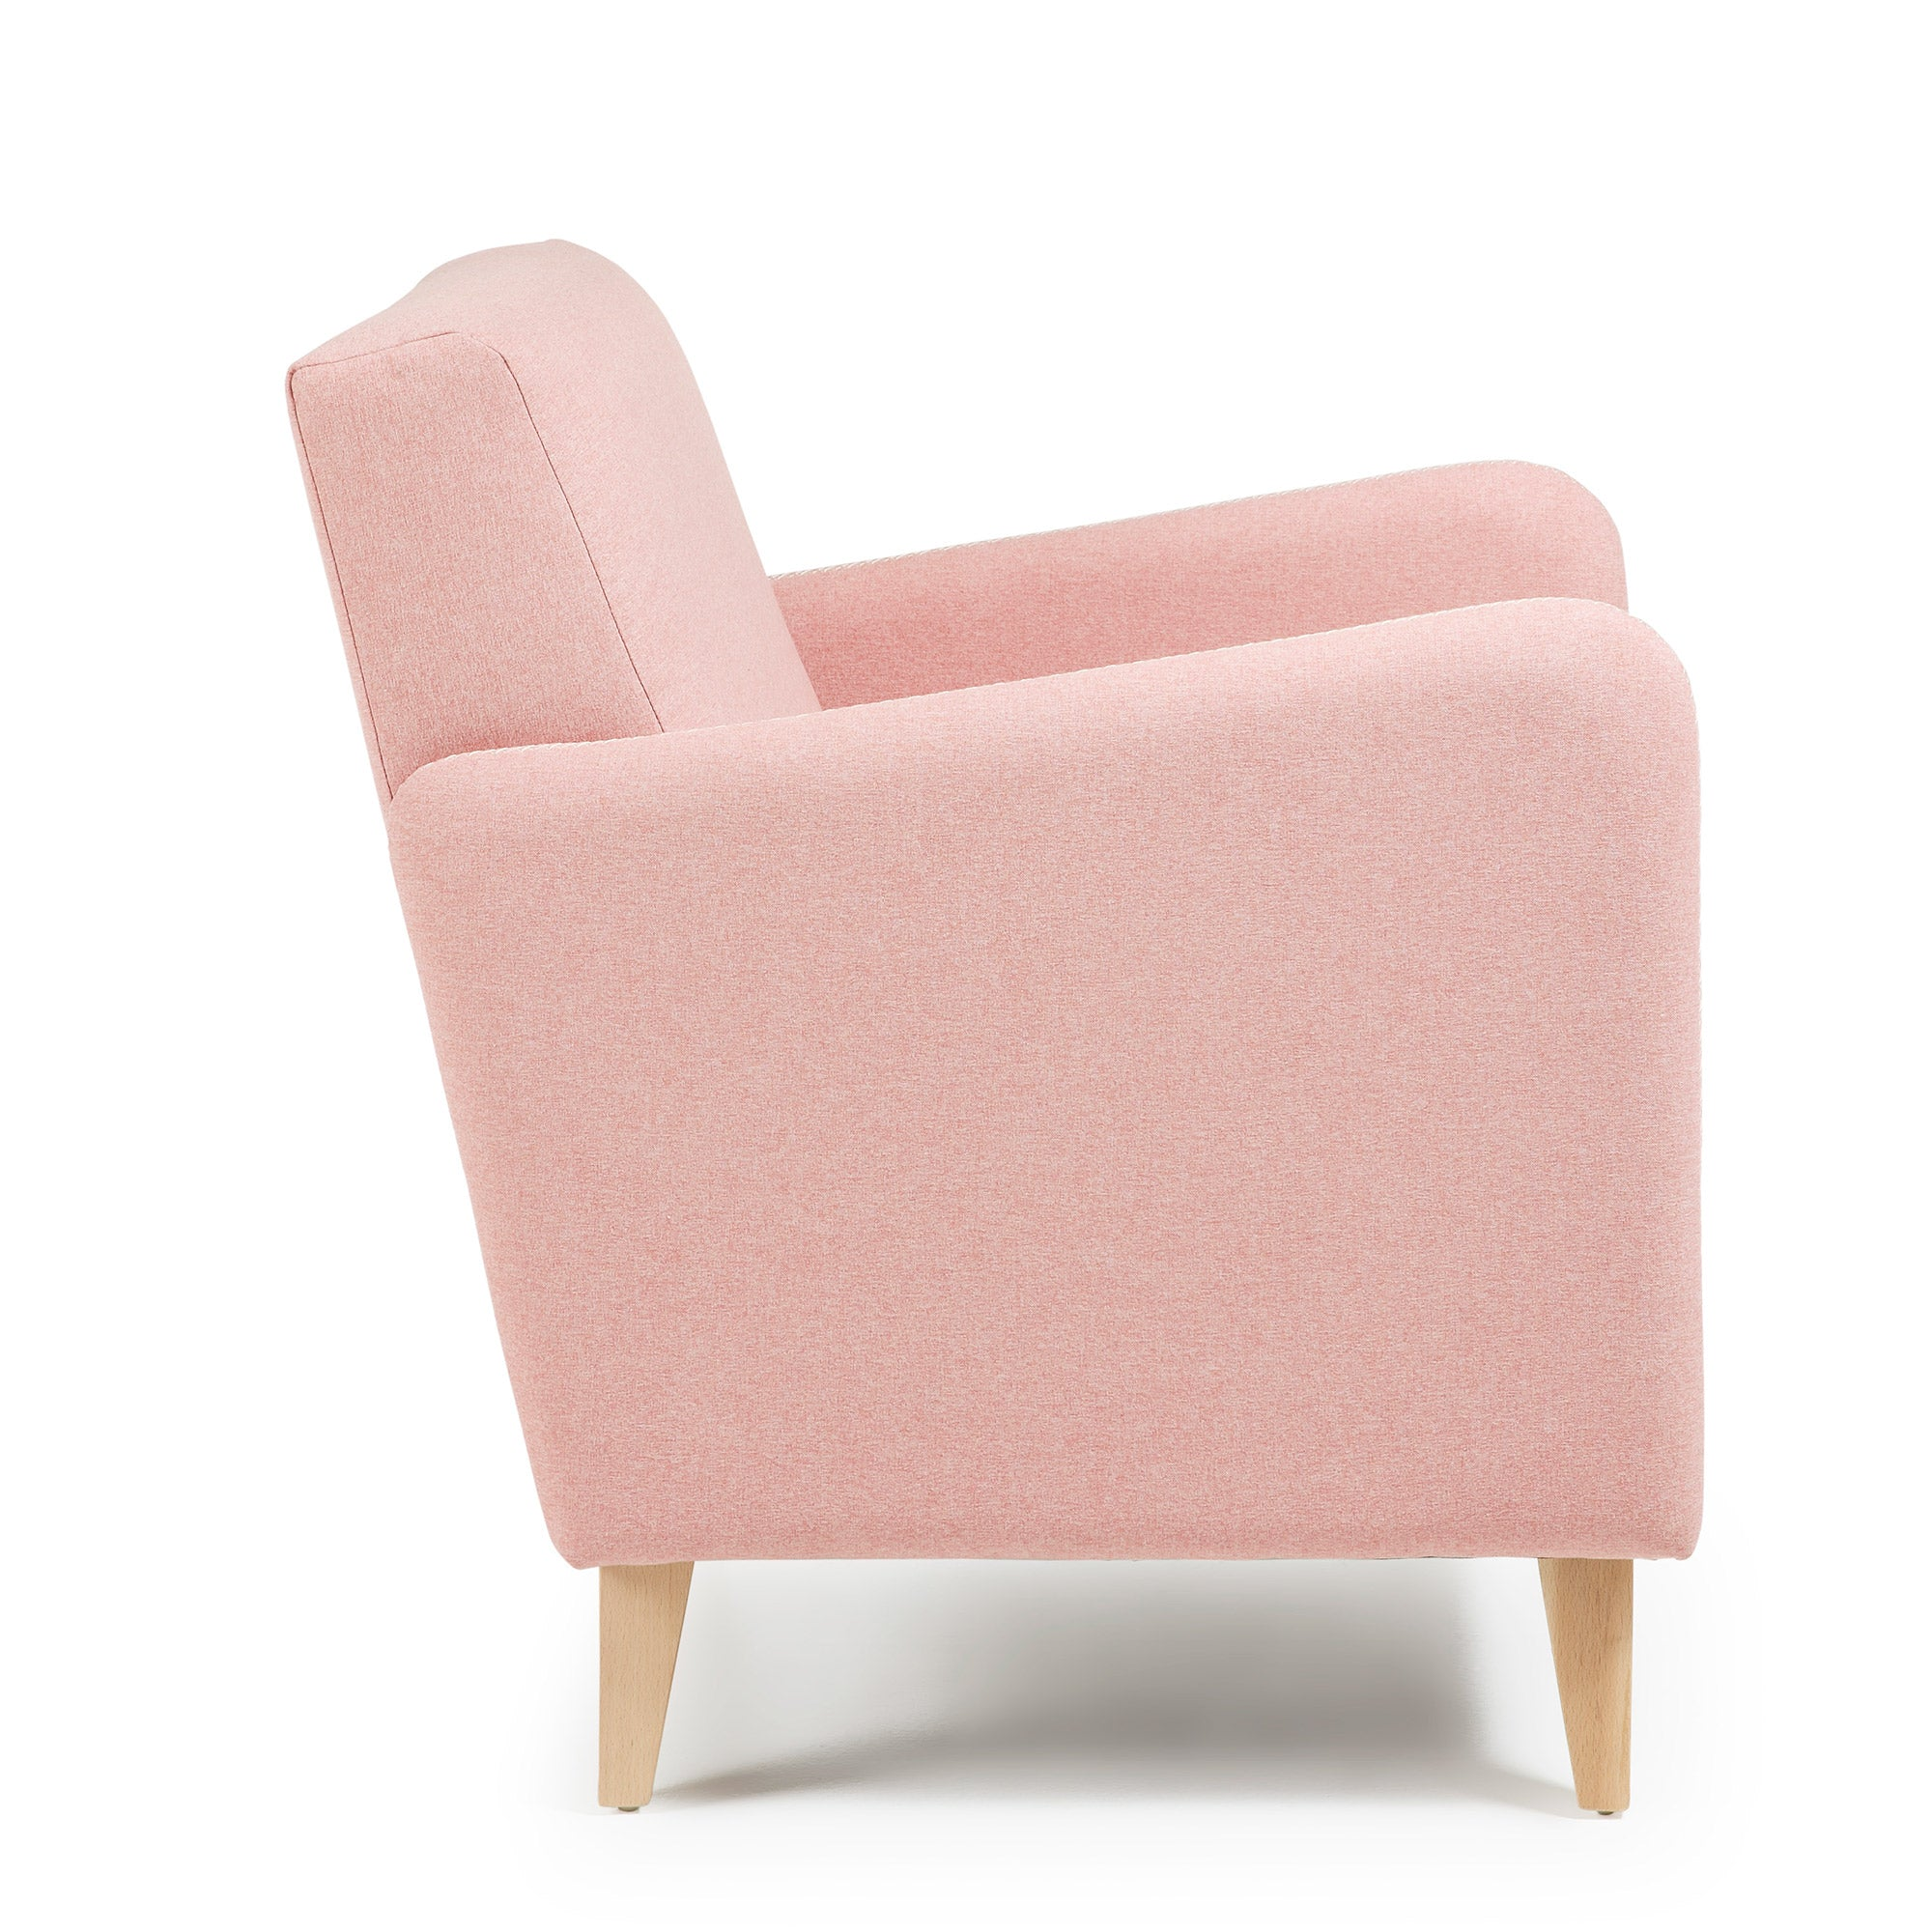 Caprinha Armchair in Pink fabric